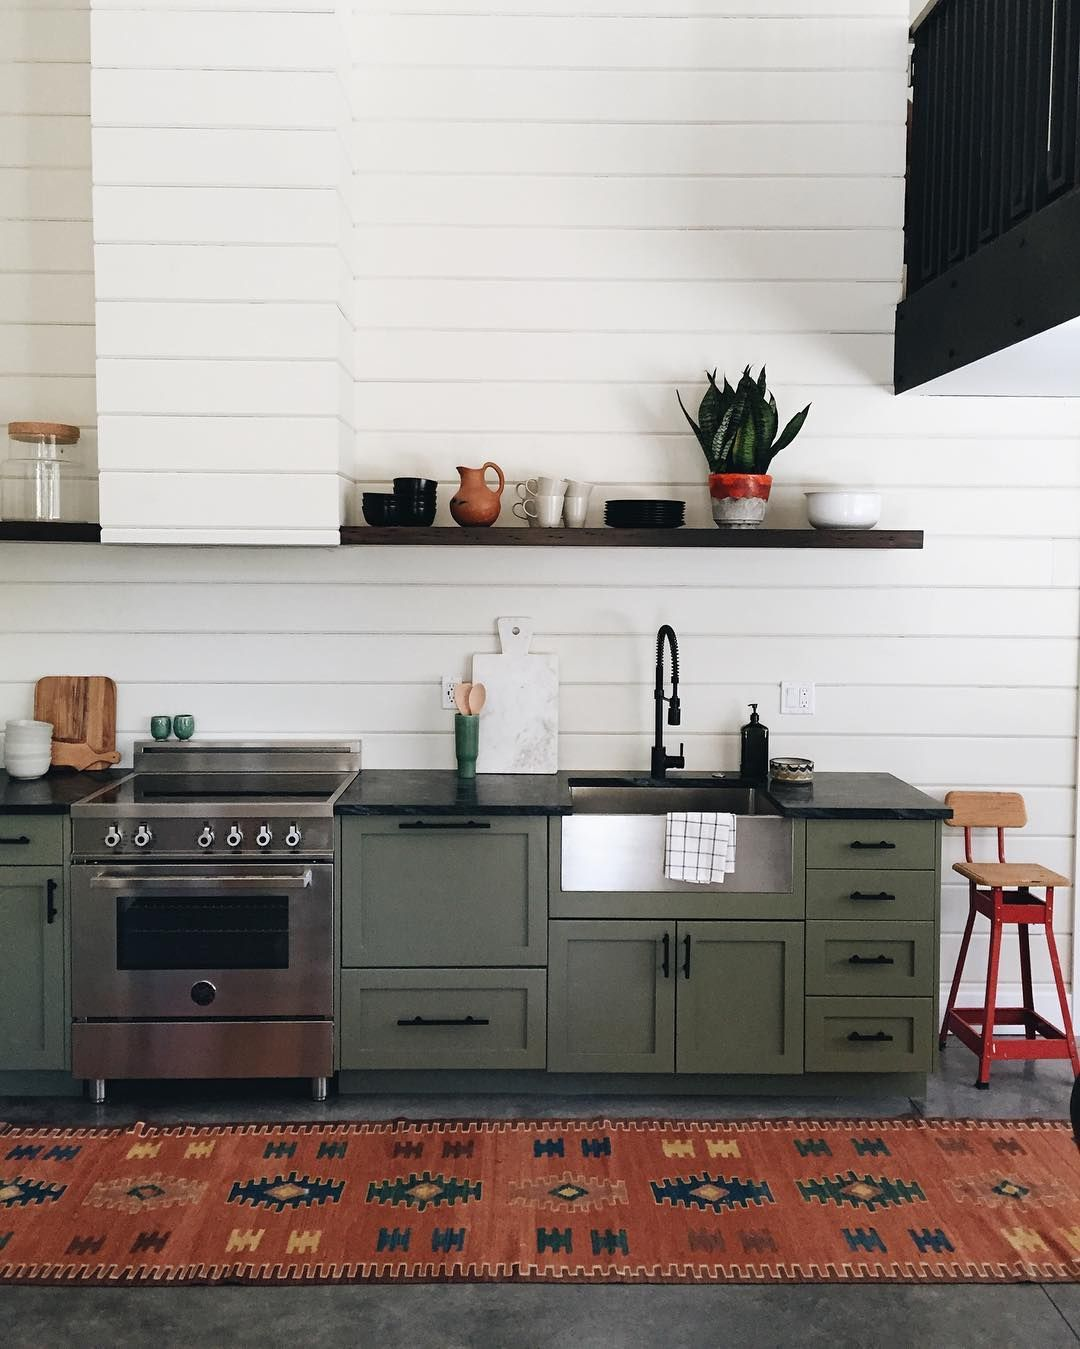 olive green kitchen cabinets with black pulls | ◎ kitchens ...